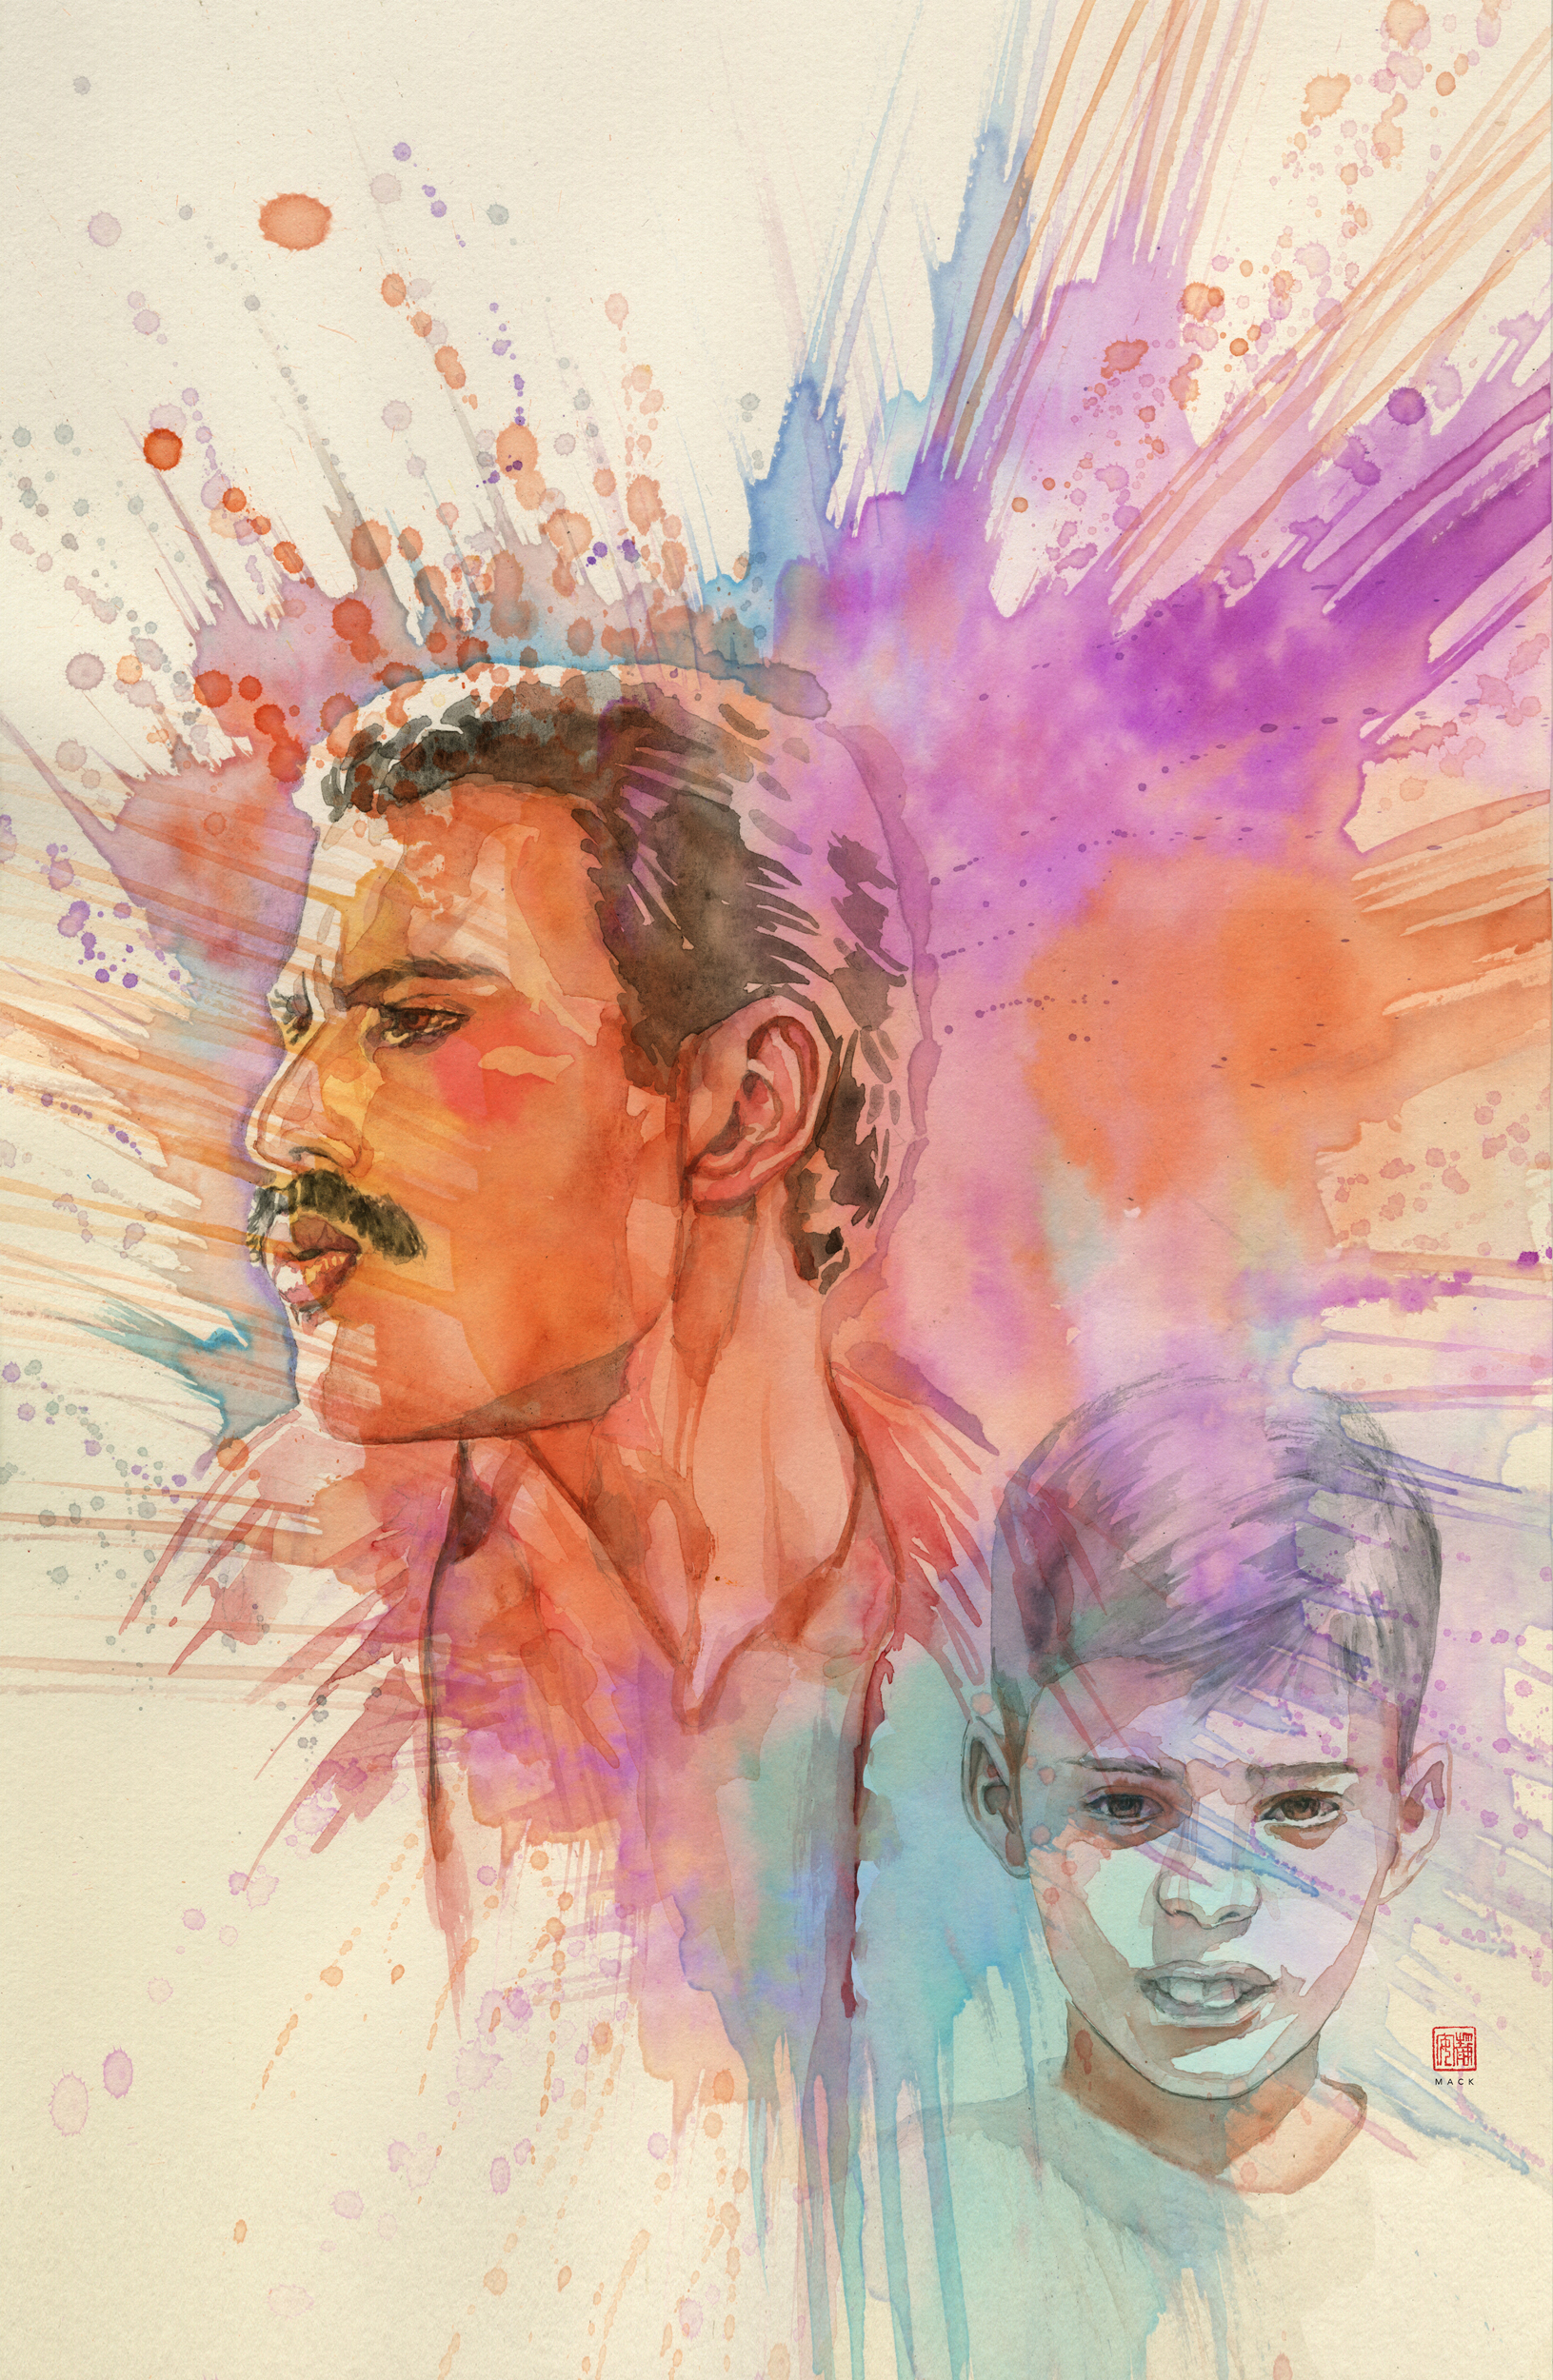 Freddie Mercury Graphic Novel to Be Released by Z2 Comics - Rolling Stone